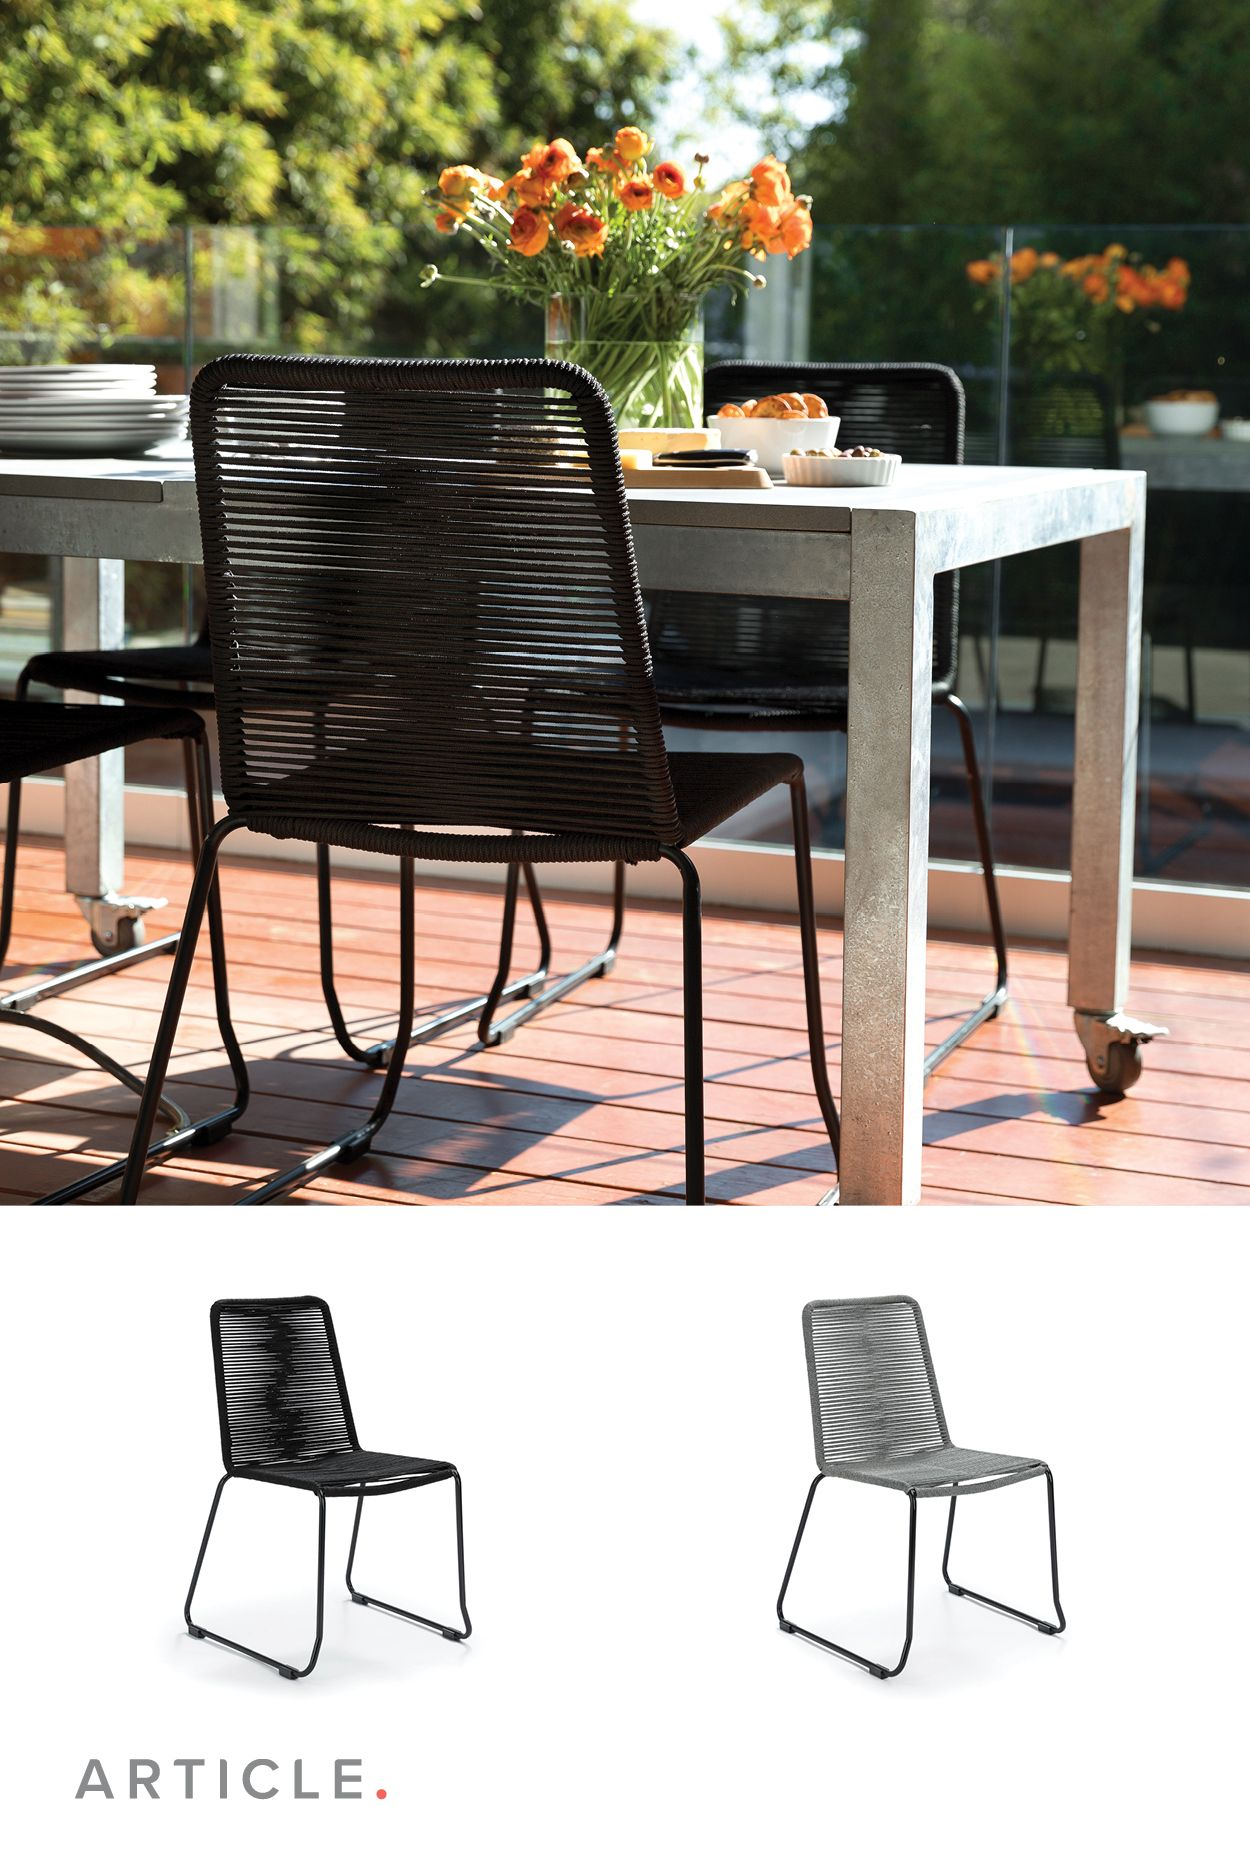 Pleasant The Como Dining Chairs Rope Seating Performs Indoor And Andrewgaddart Wooden Chair Designs For Living Room Andrewgaddartcom